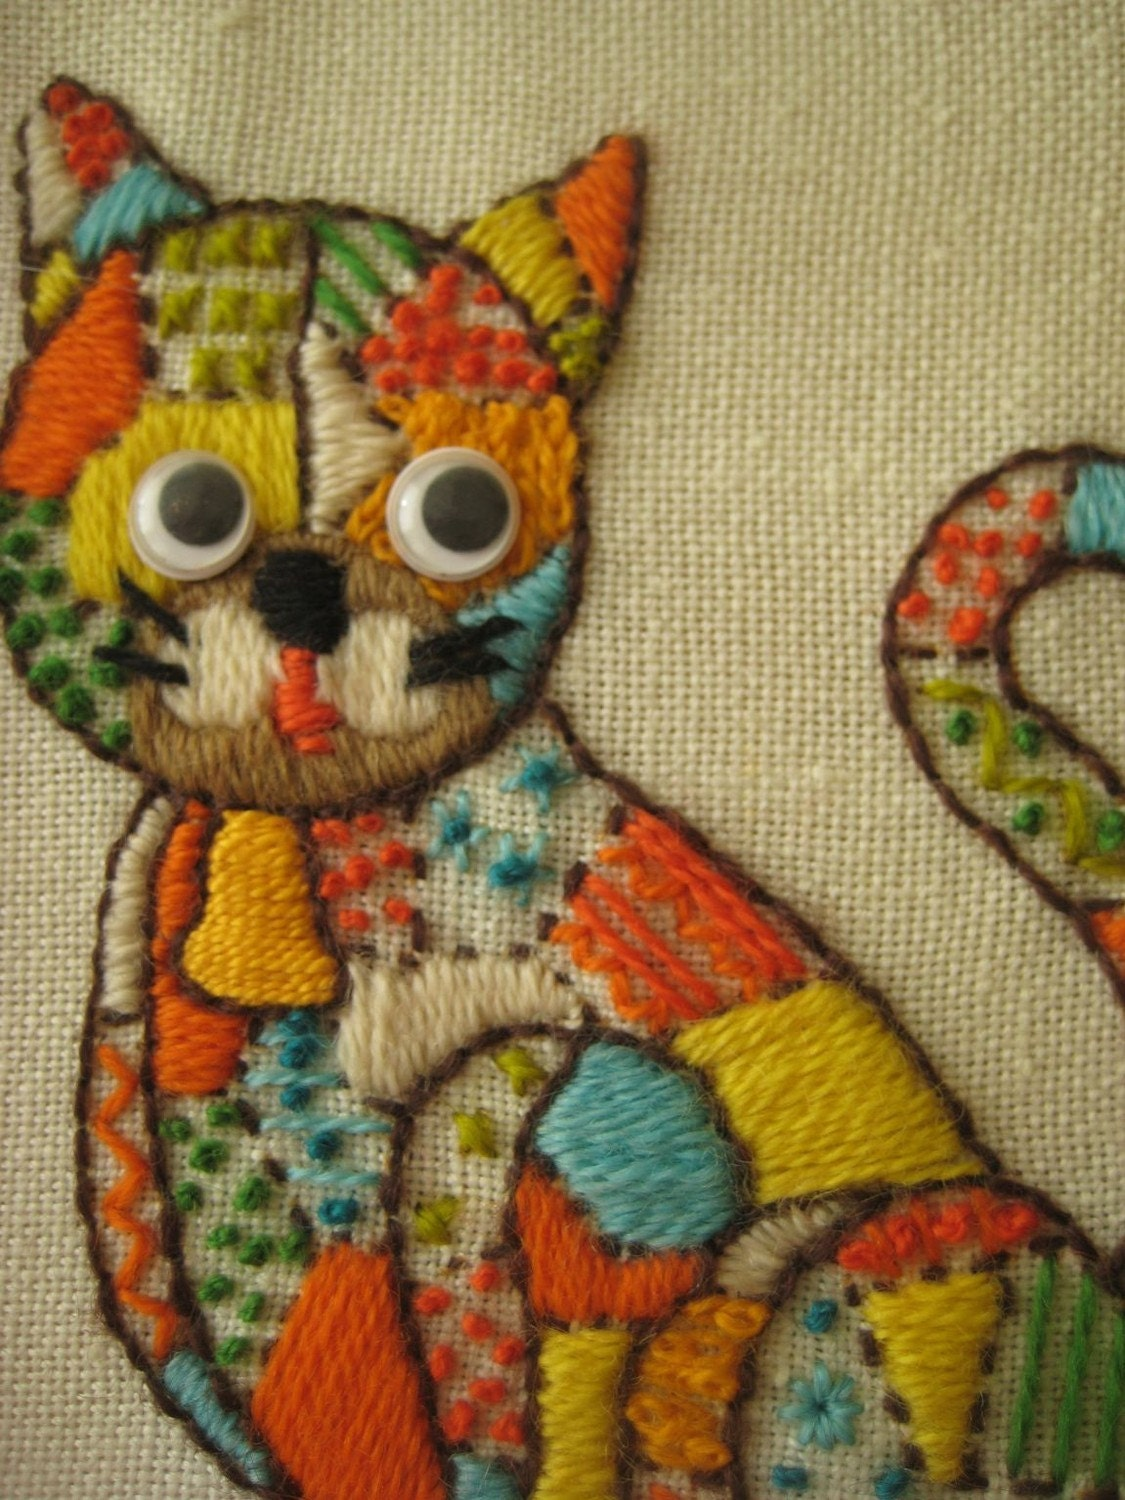 Vintage Multicolored Crewel/Embroidered Cat, with Googly Eyes, Framed